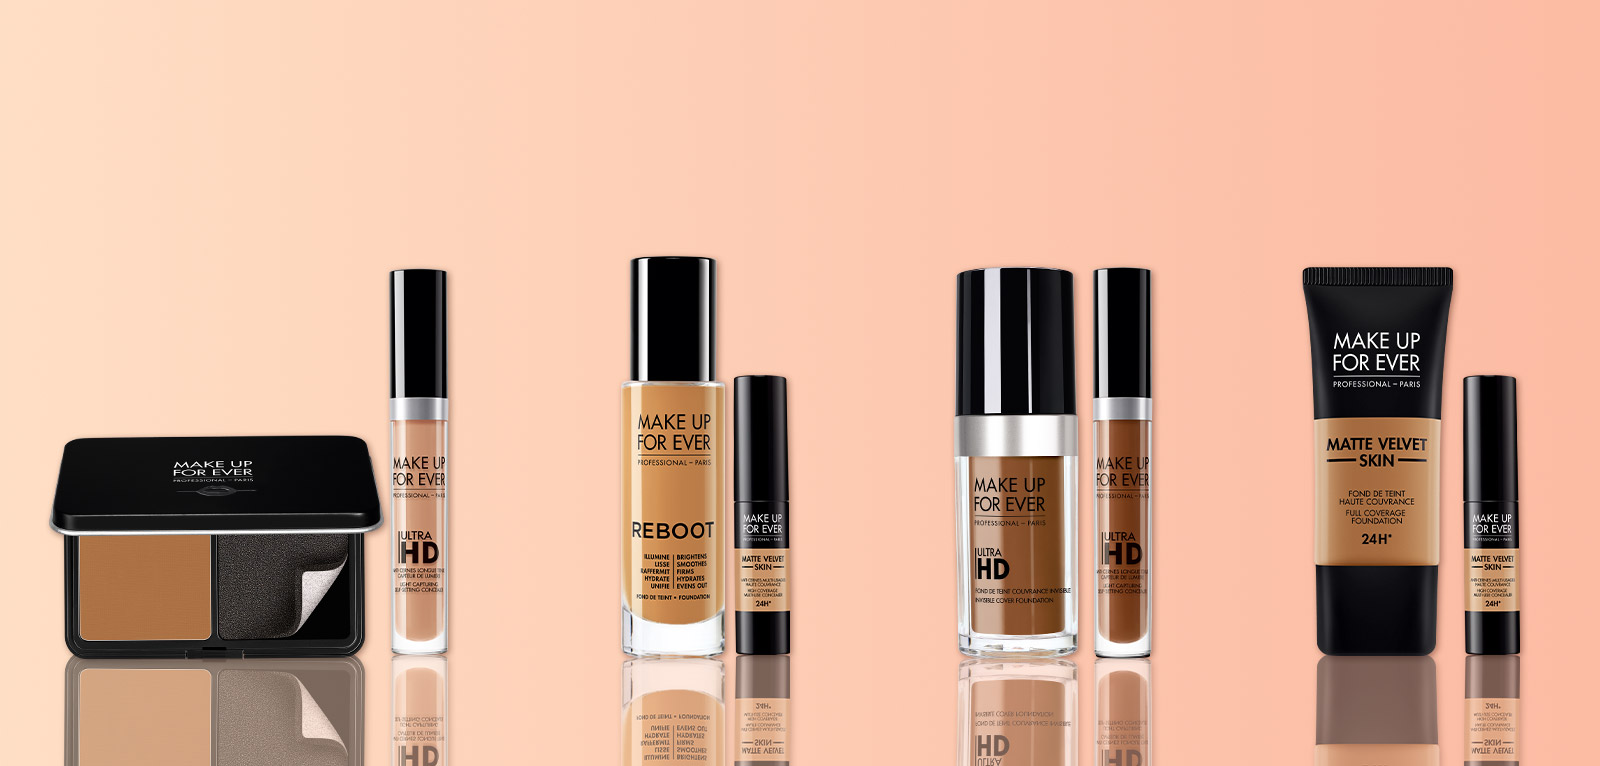 $55 when you mix and match any foundation + concealer